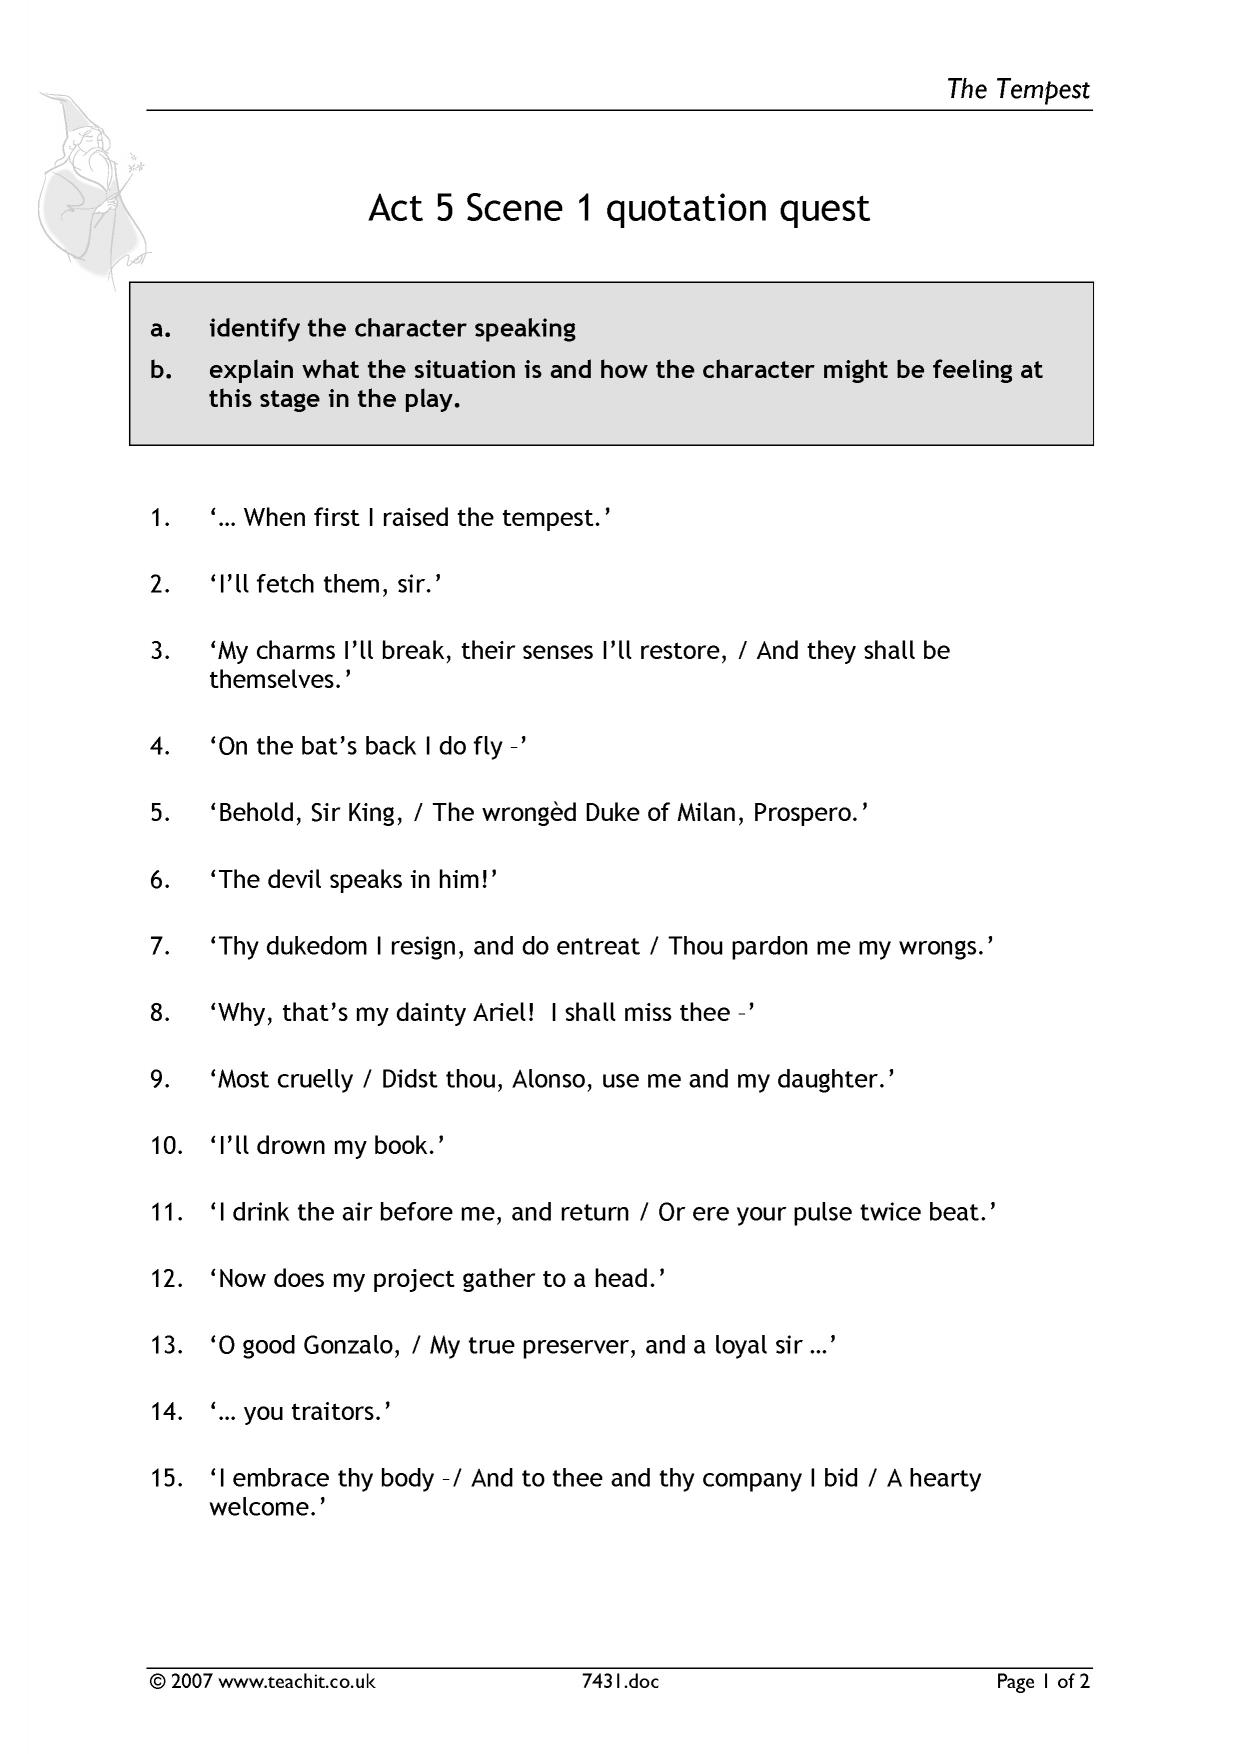 the tempest questions and answers pdf